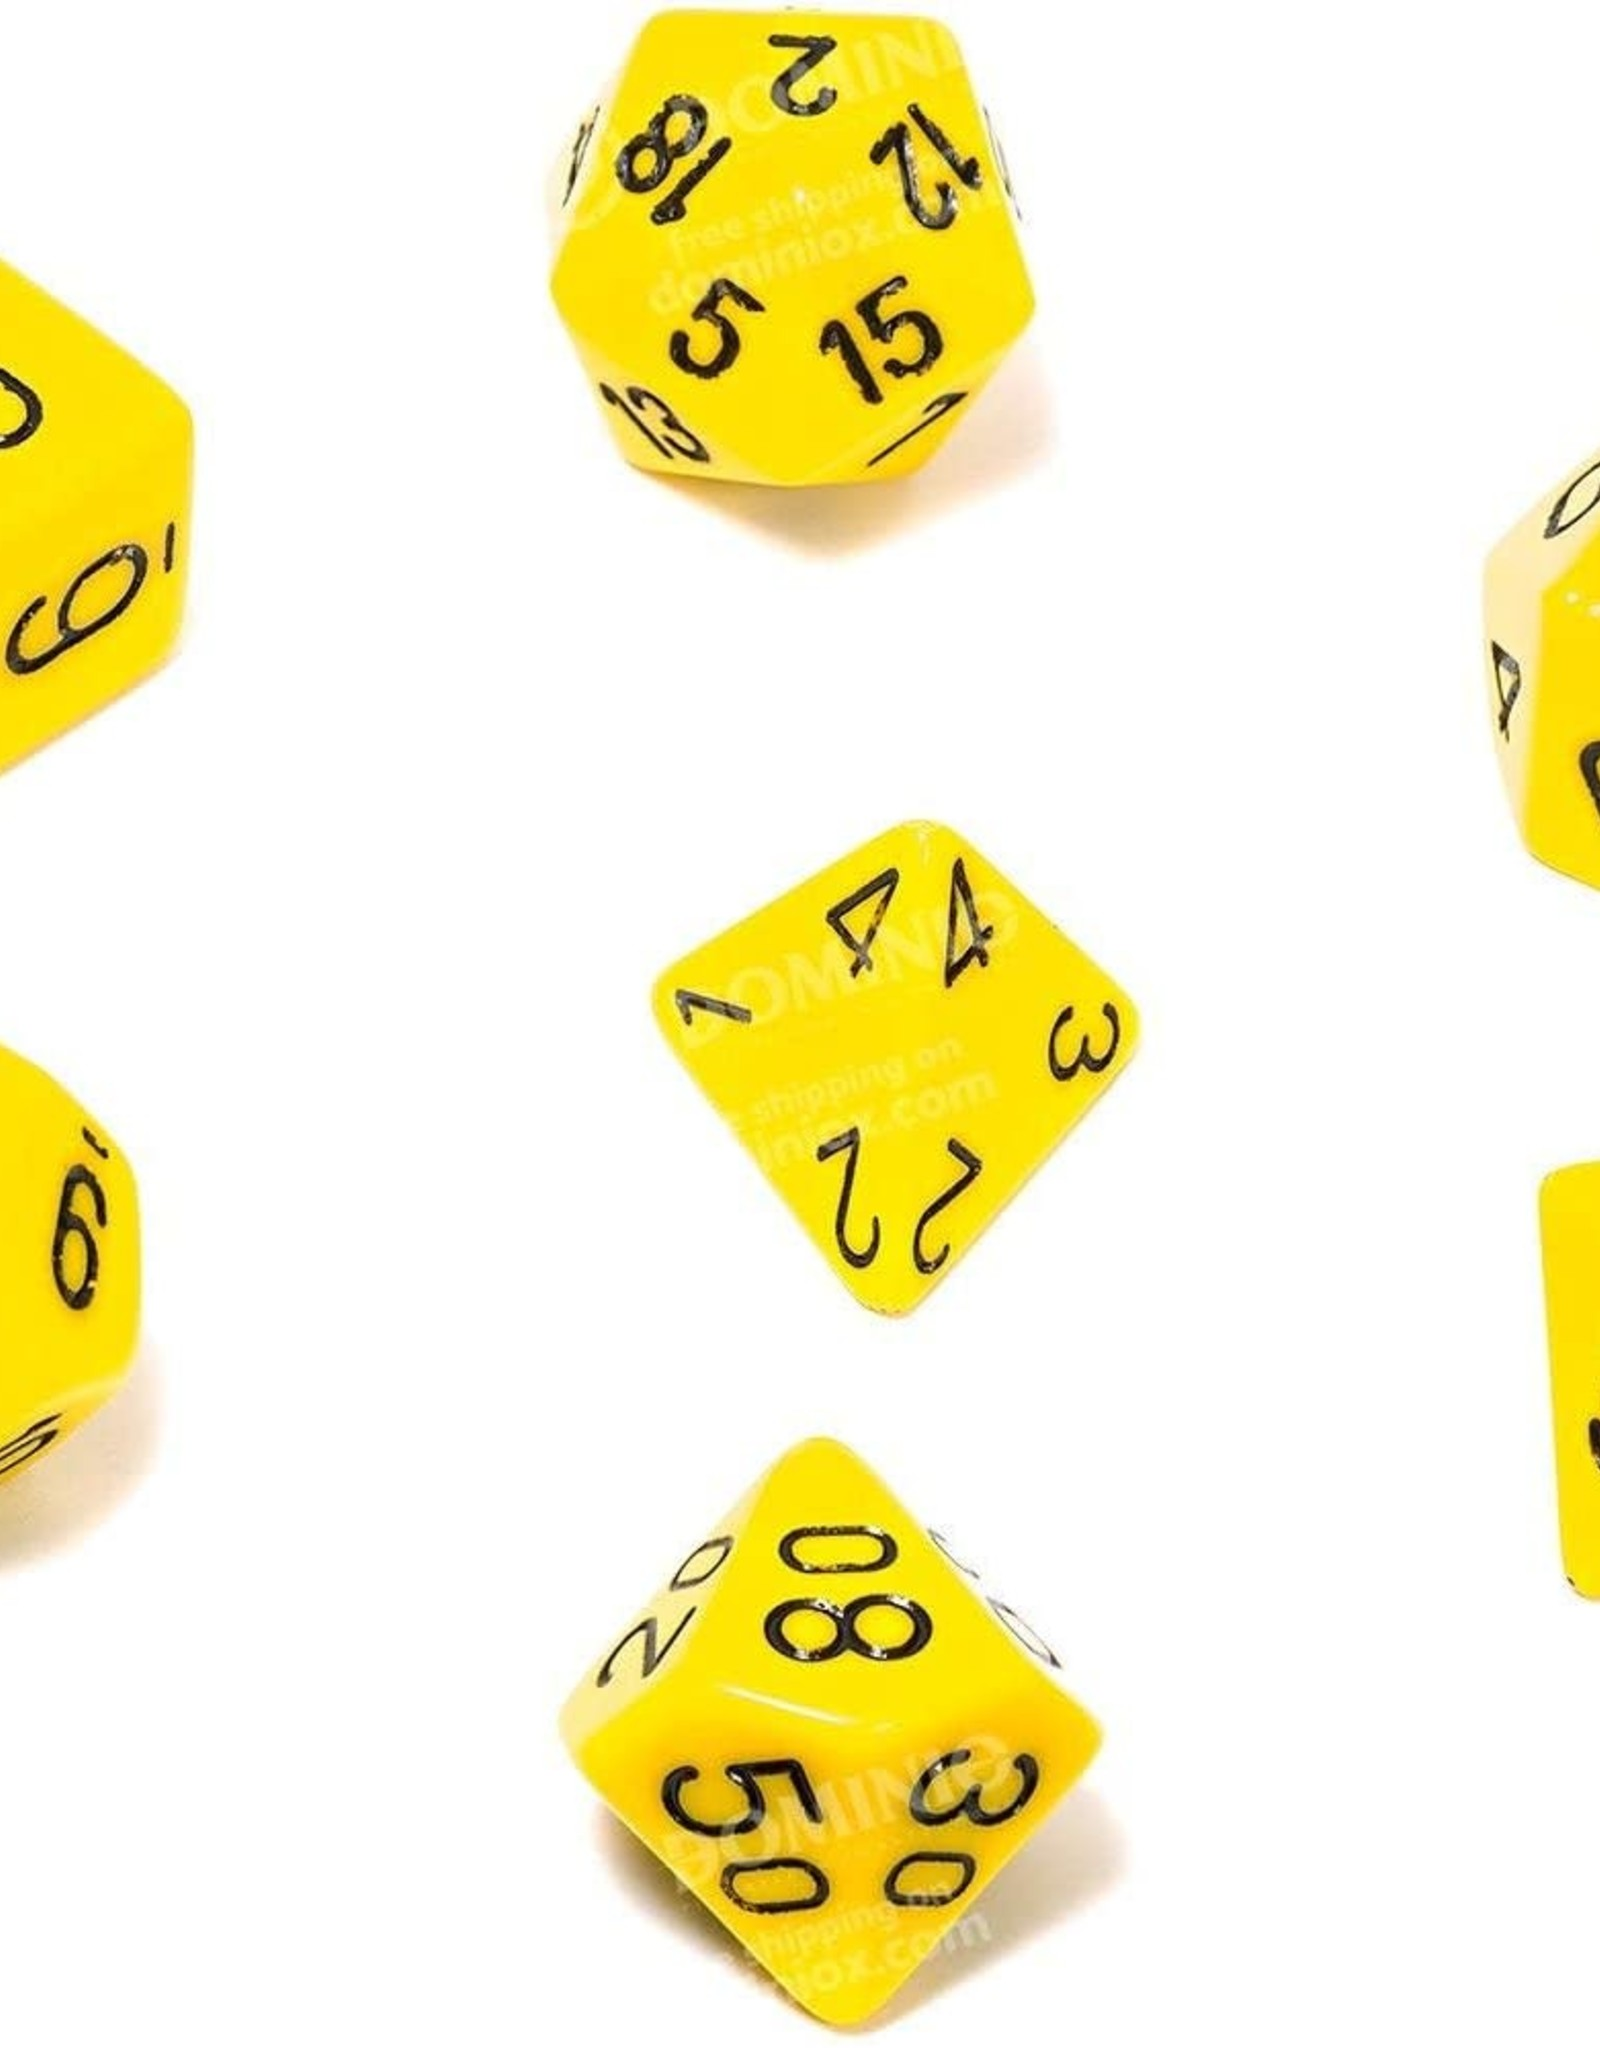 Chessex Opaque Poly 7 set: Yellow w/ Black